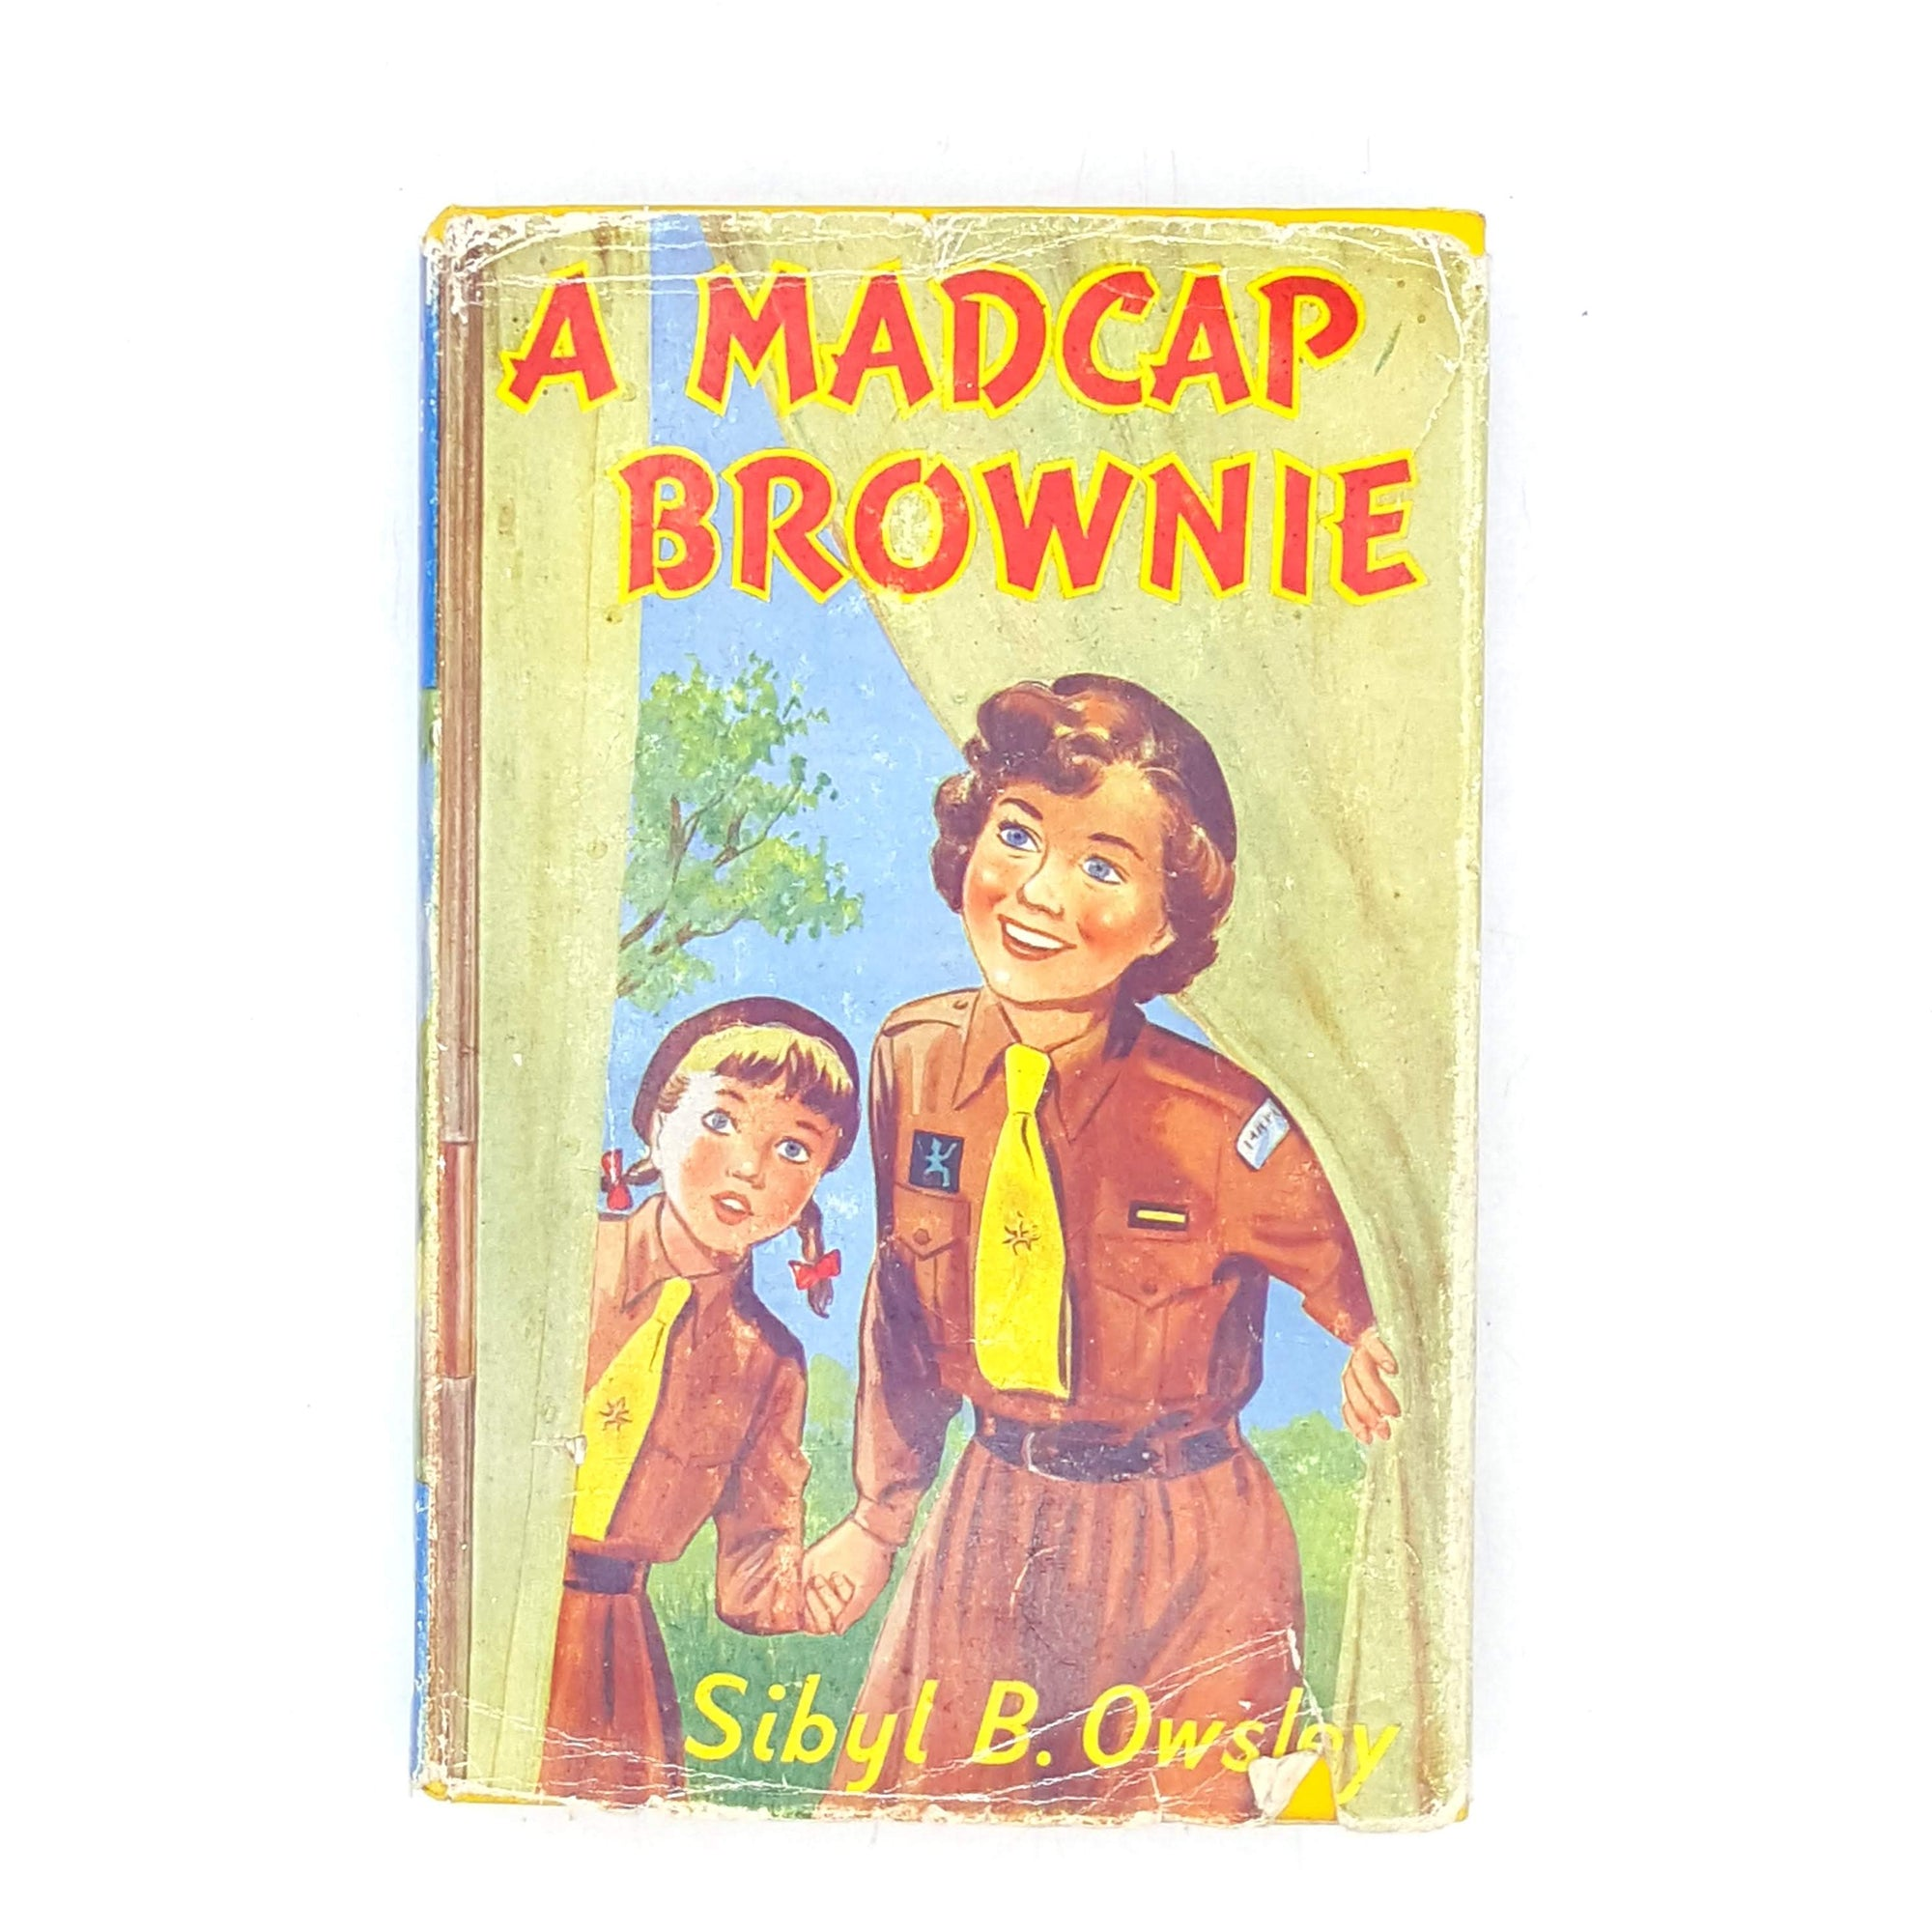 thrift-1956-country-house-library-sybyl-b-owsley-vintage-yellow-childrens-classics-books-madcap-brownie-old-